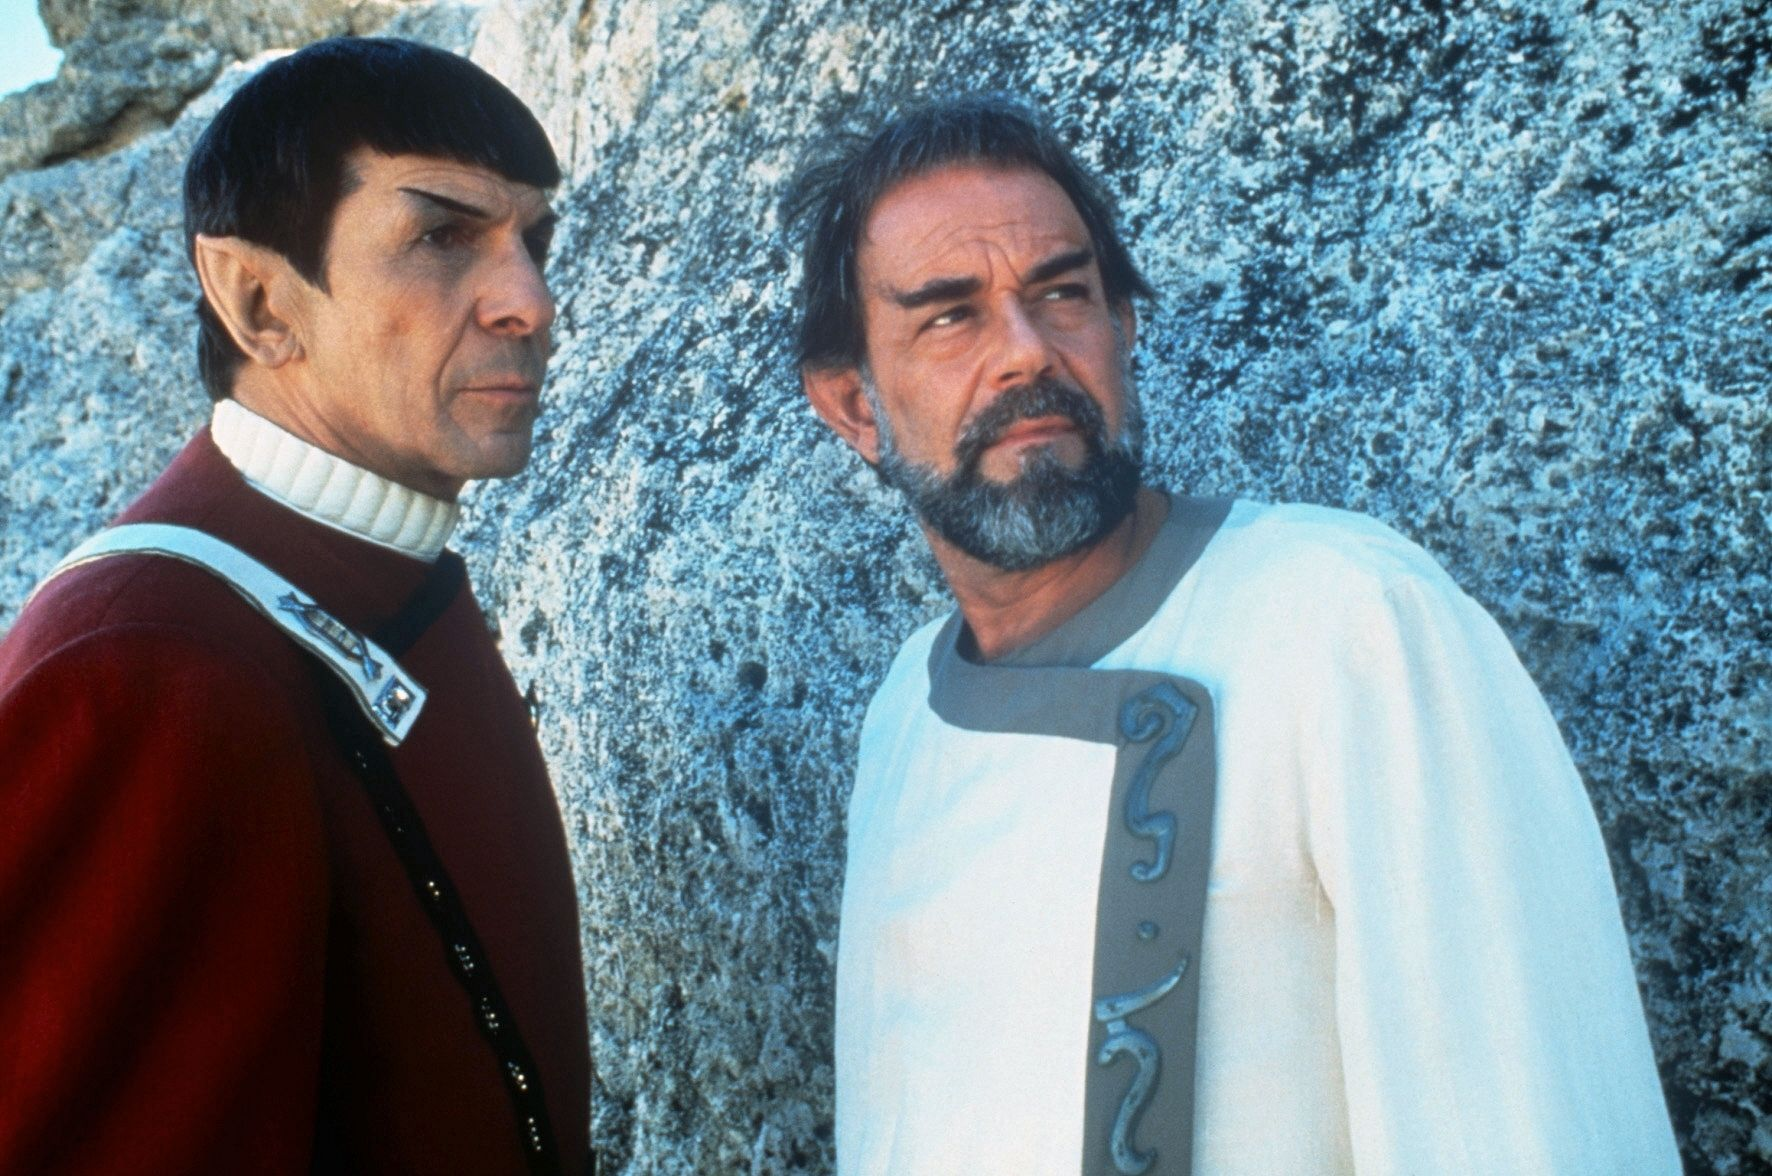 Spock (Leonard Nimoy) and his half-brother Sybok (Lawrence Luckinbill) in Star Trek V: The Final Frontier (1989)